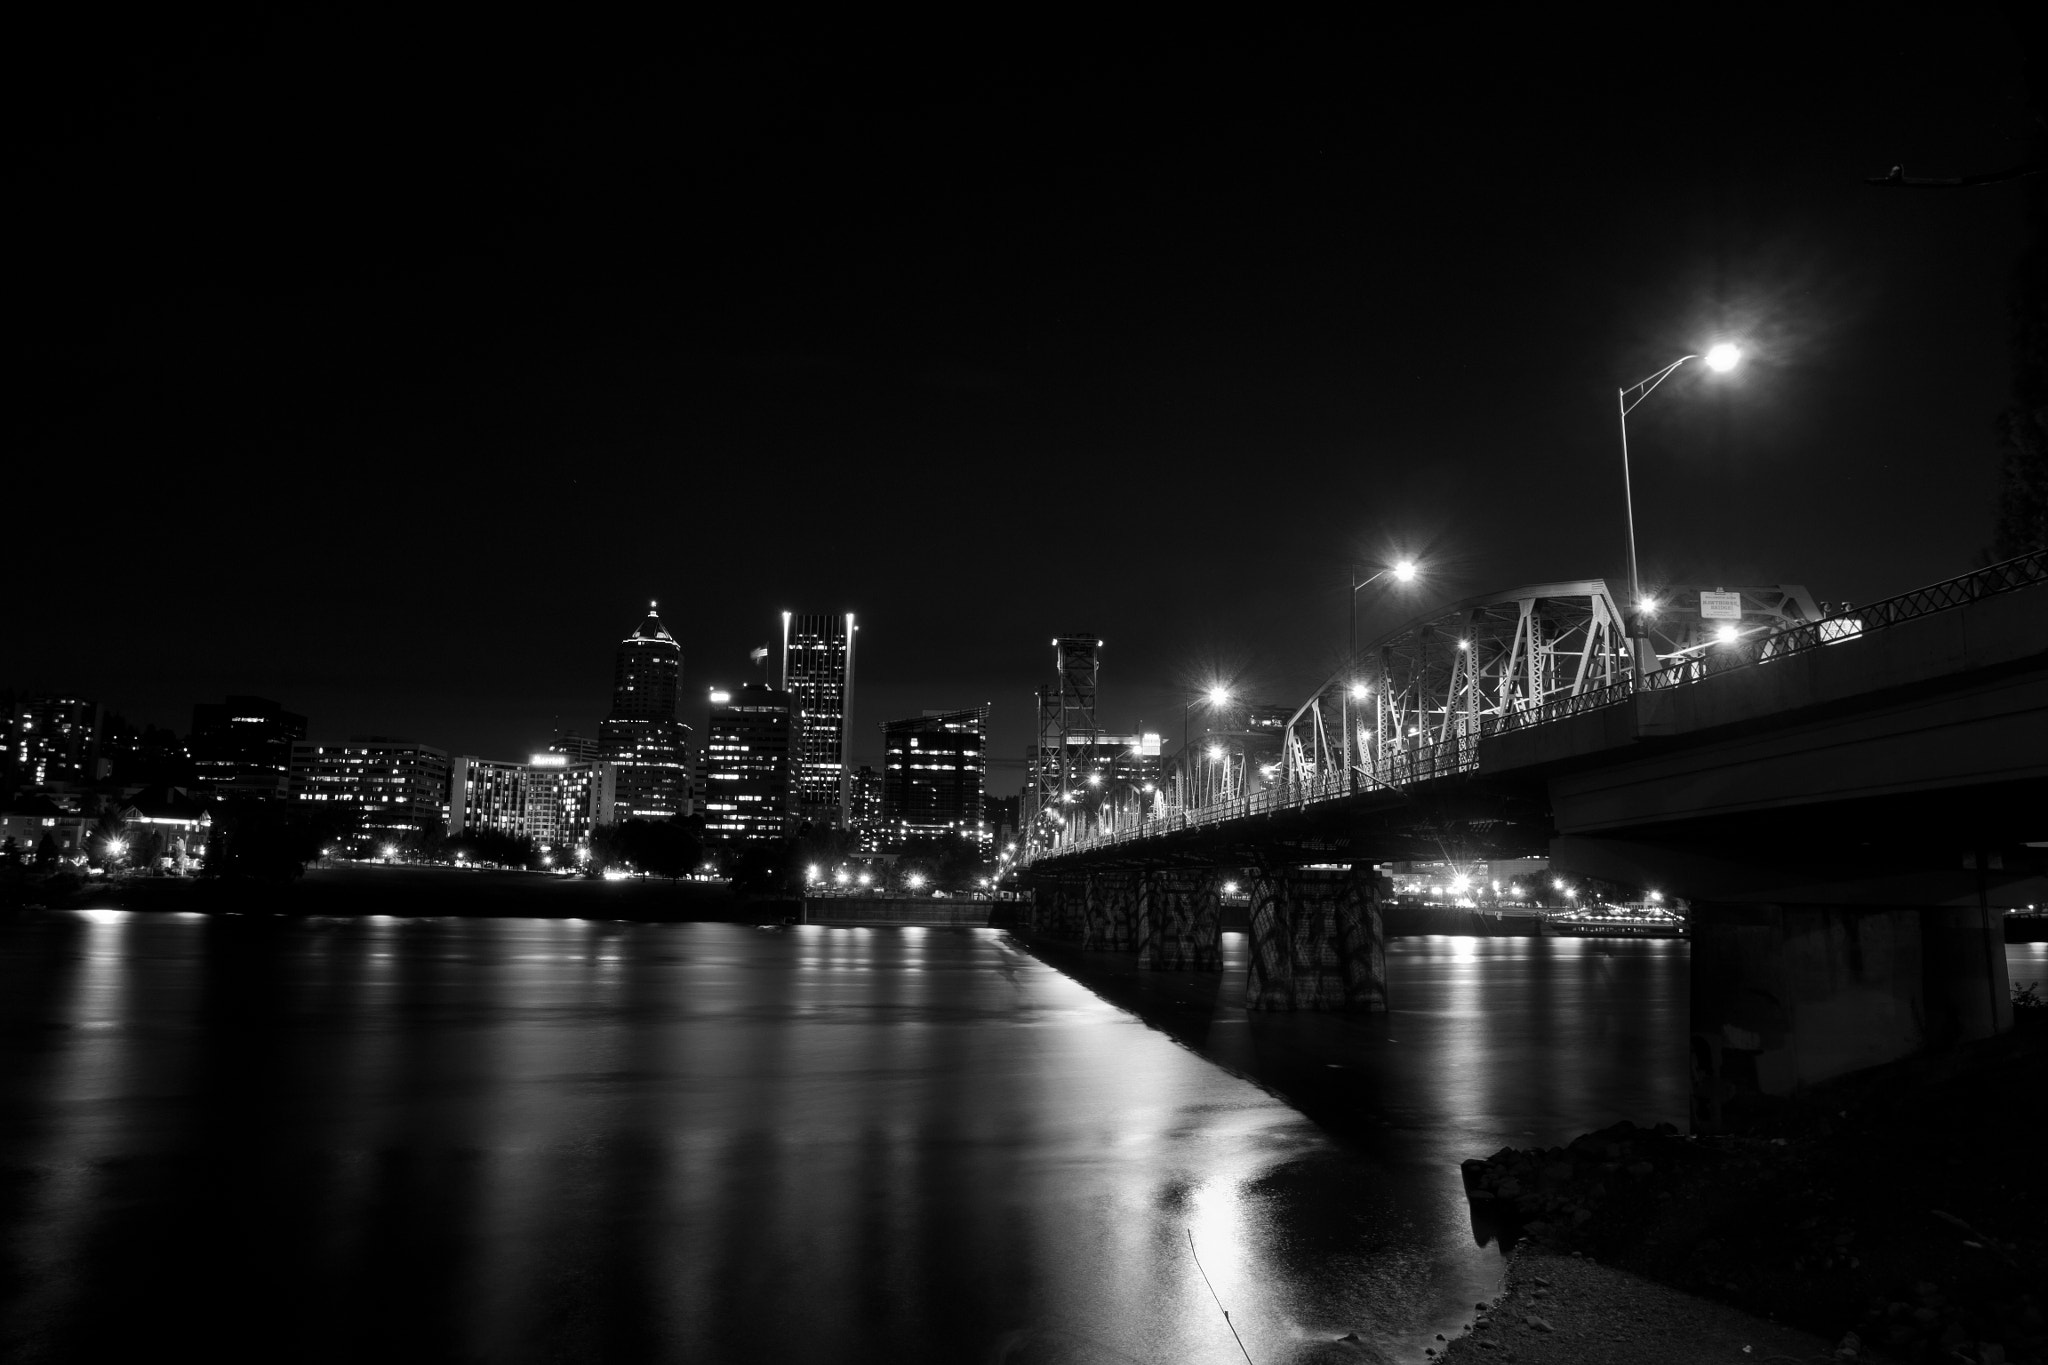 Photograph B&W Time of Night by Sarah Turner on 500px